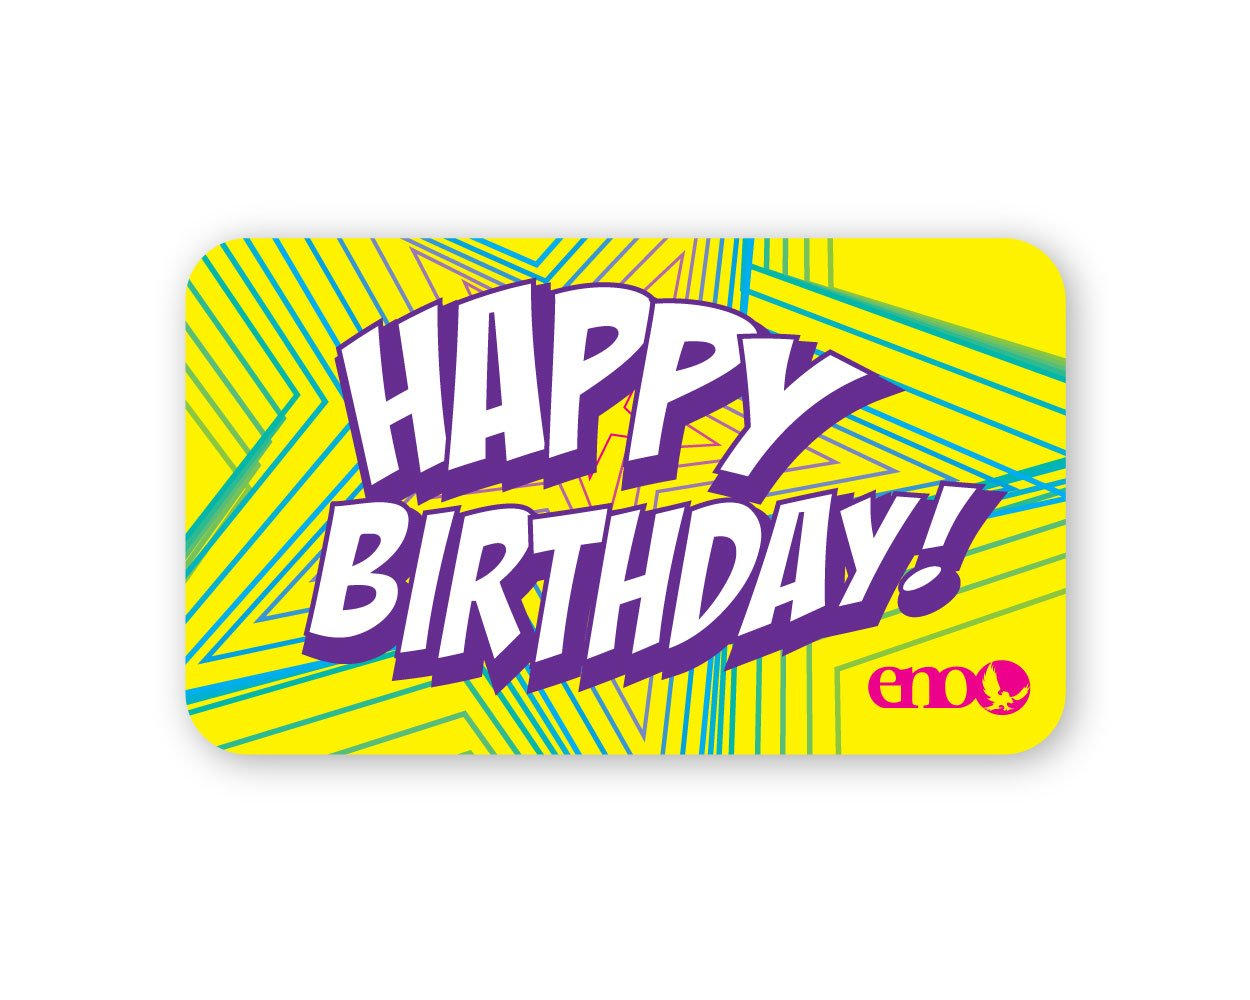 ENO Nation $25.00 / Happy Birthday Gift Card - 17359640101013